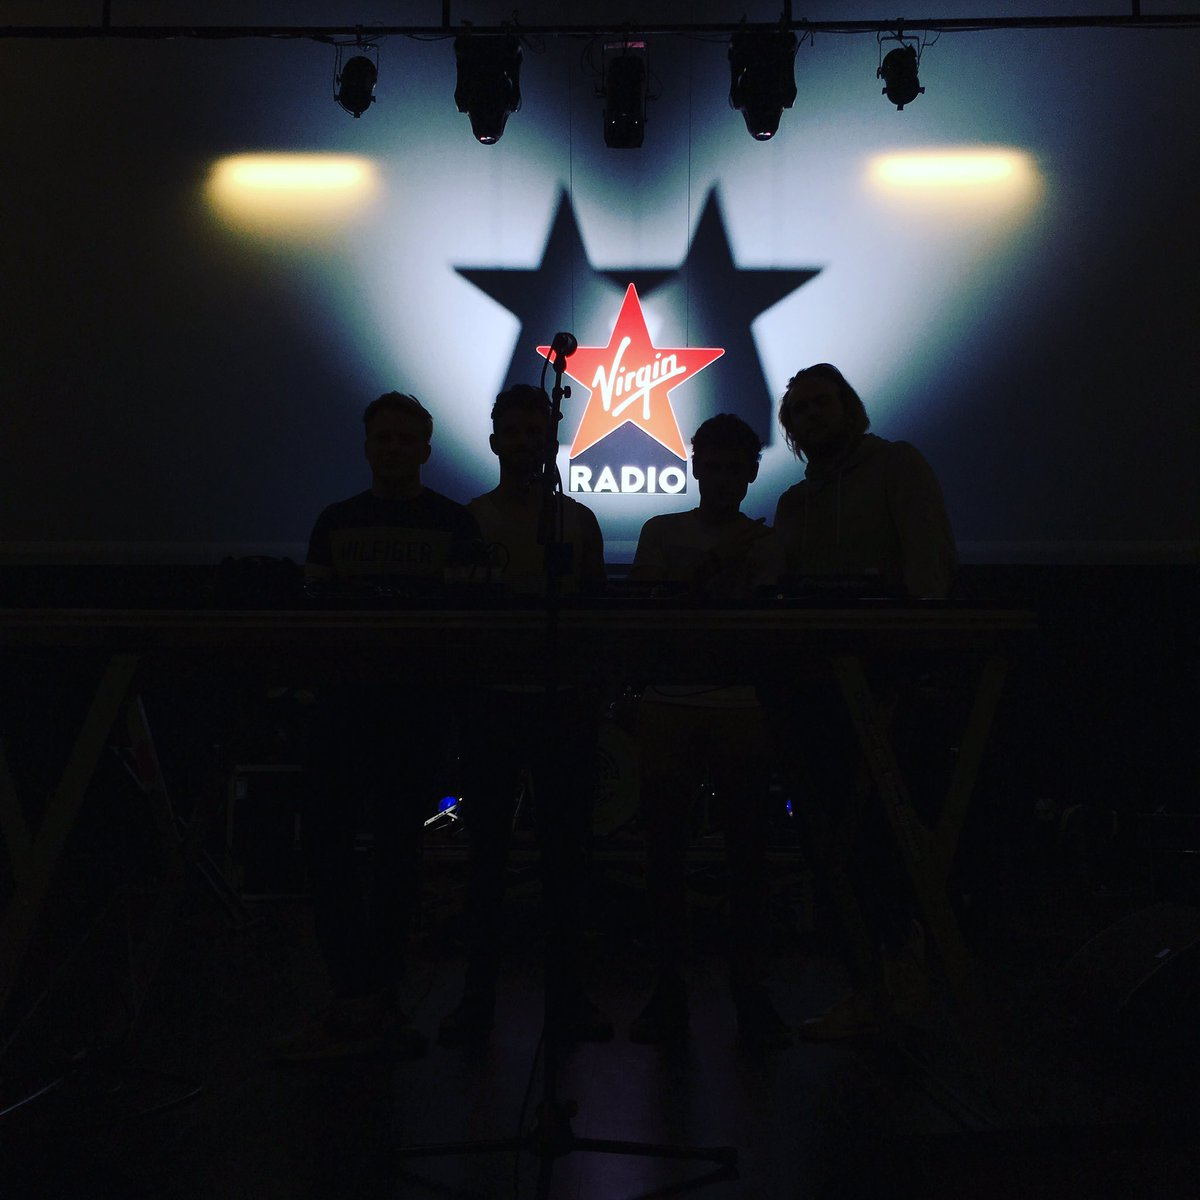 Getting ready for tonight ! See you there #dijon #Virginradiolive @VirginRadiofr  <br>http://pic.twitter.com/M1zgnjv8RY